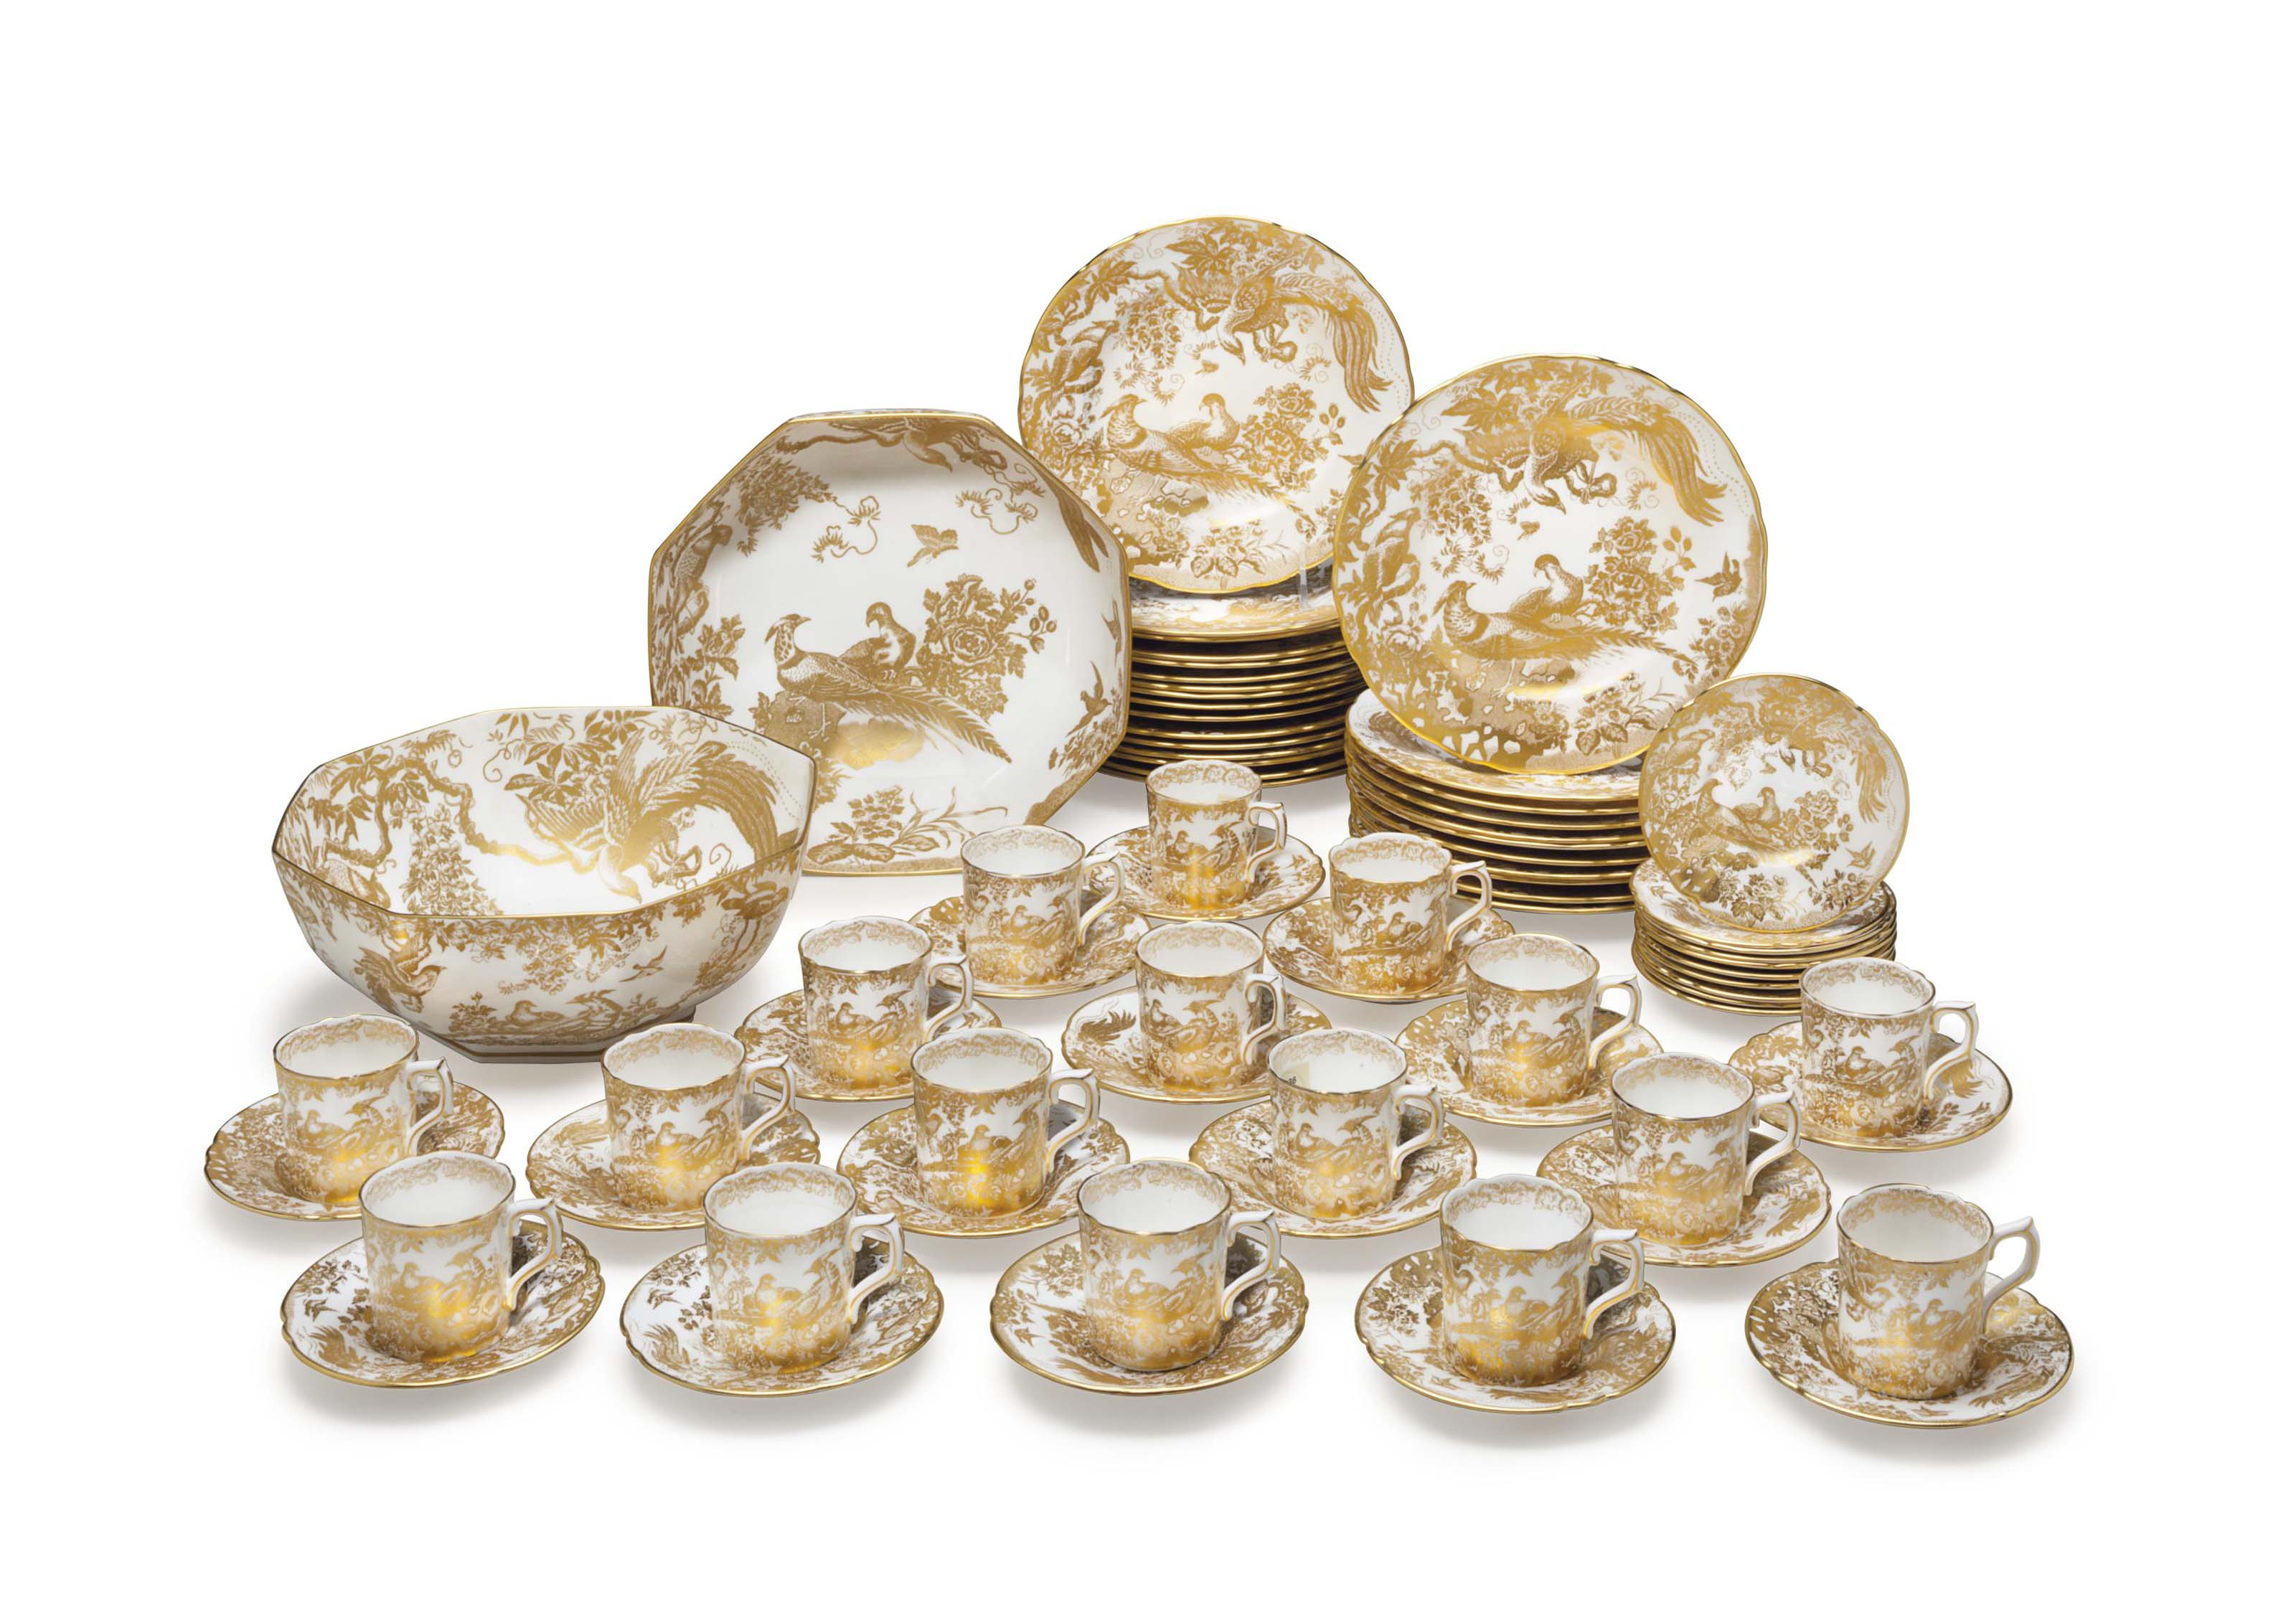 A ROYAL CROWN DERBY PORCELAIN DESSERT SERVICE IN THE 'GOLD AVES' PATTERN